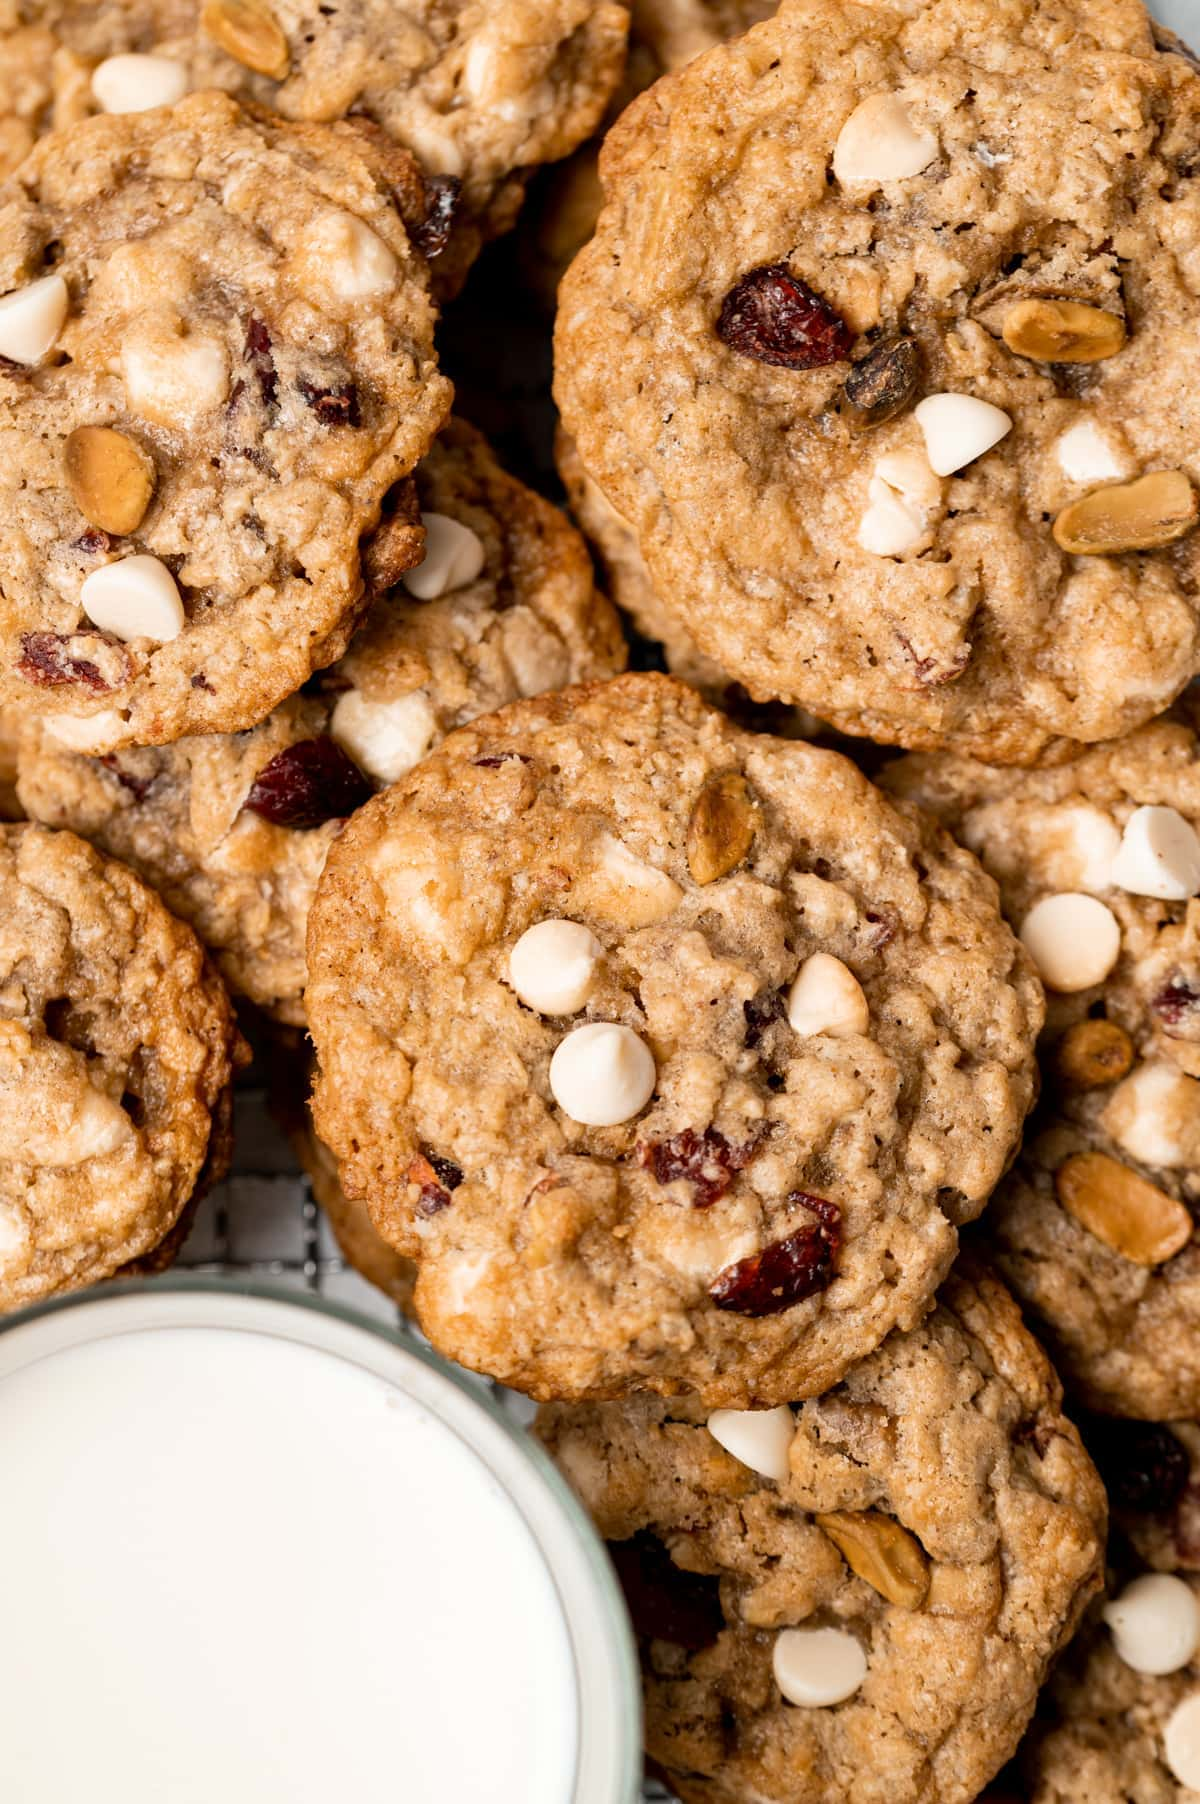 pile of oatmeal cookies with cranberries white chocolate chips and pistachios glass of milk